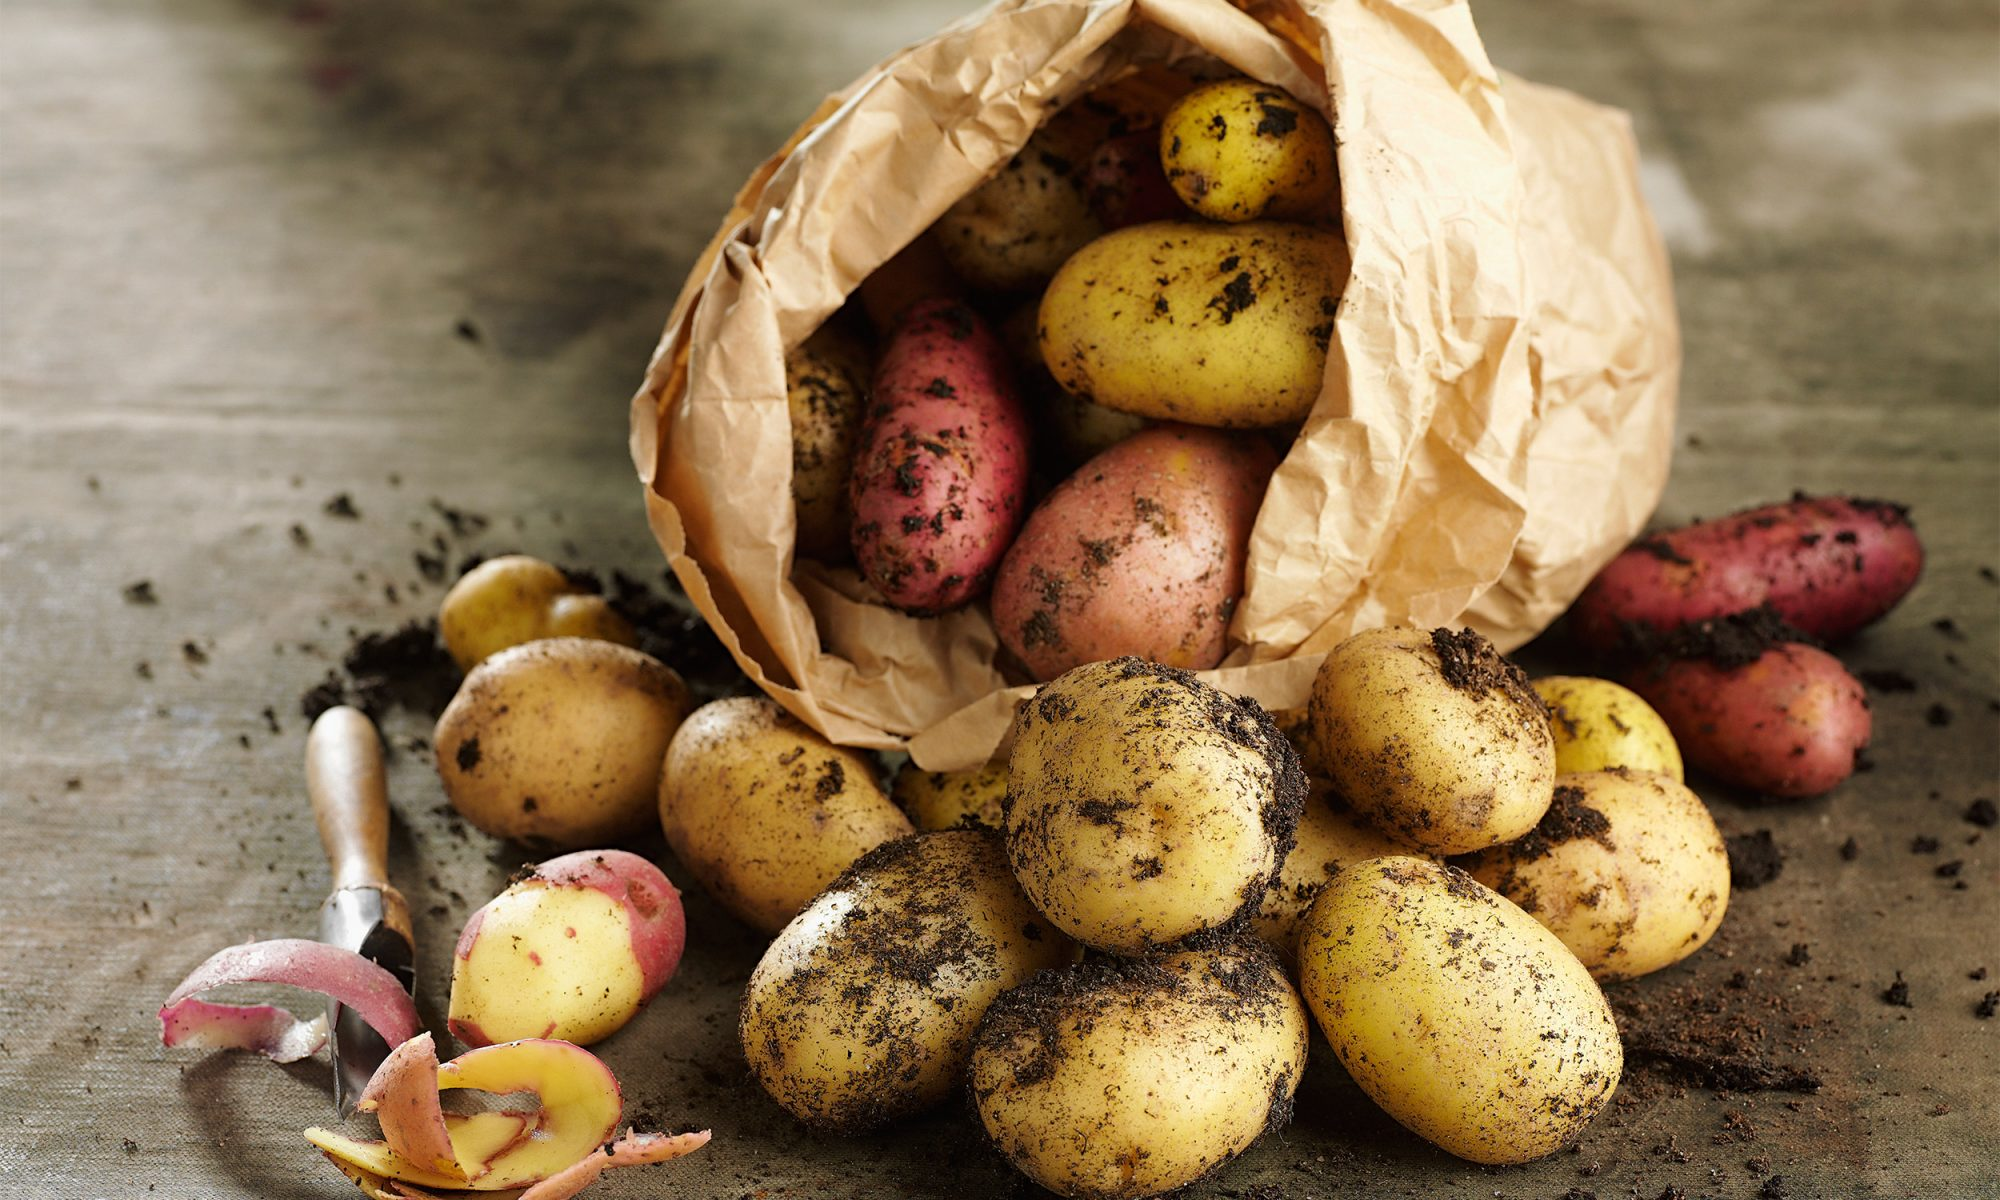 EC: How to Peel Potatoes Without a Peeler